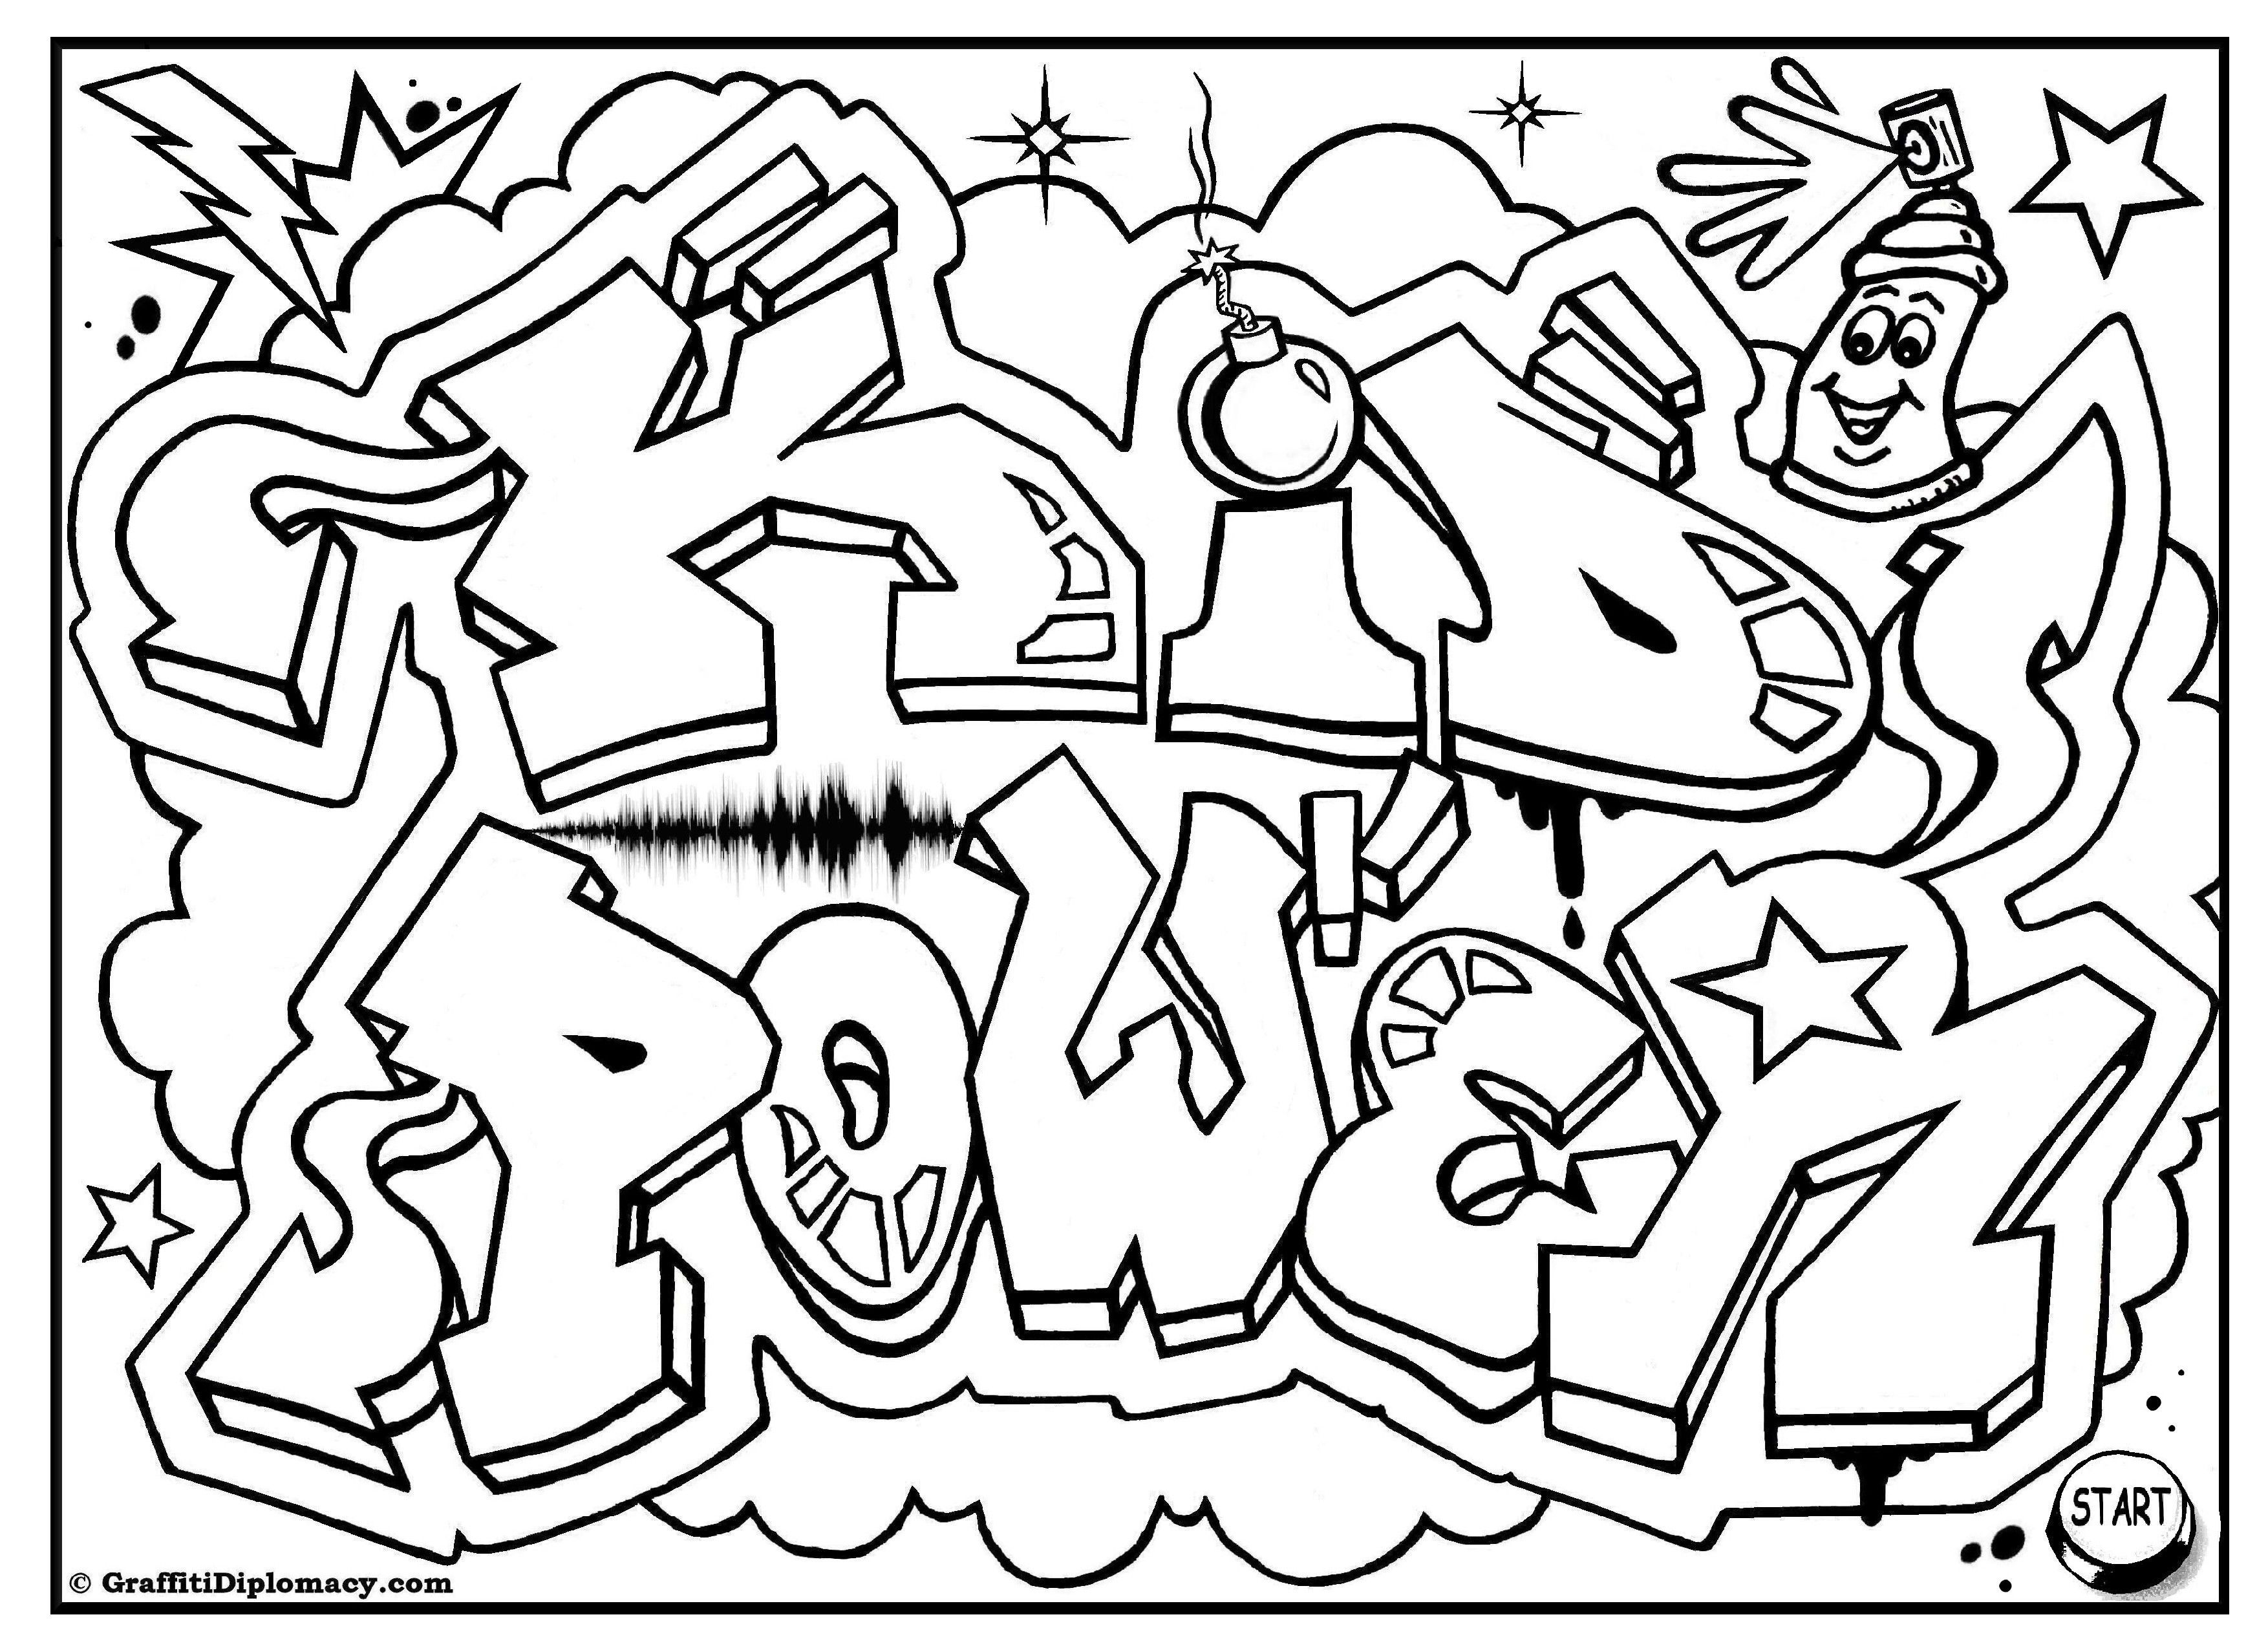 Street Art Graffiti Coloring Pages For Adults Graffiti Coloring Pages Coloring Book Art Coloring Books